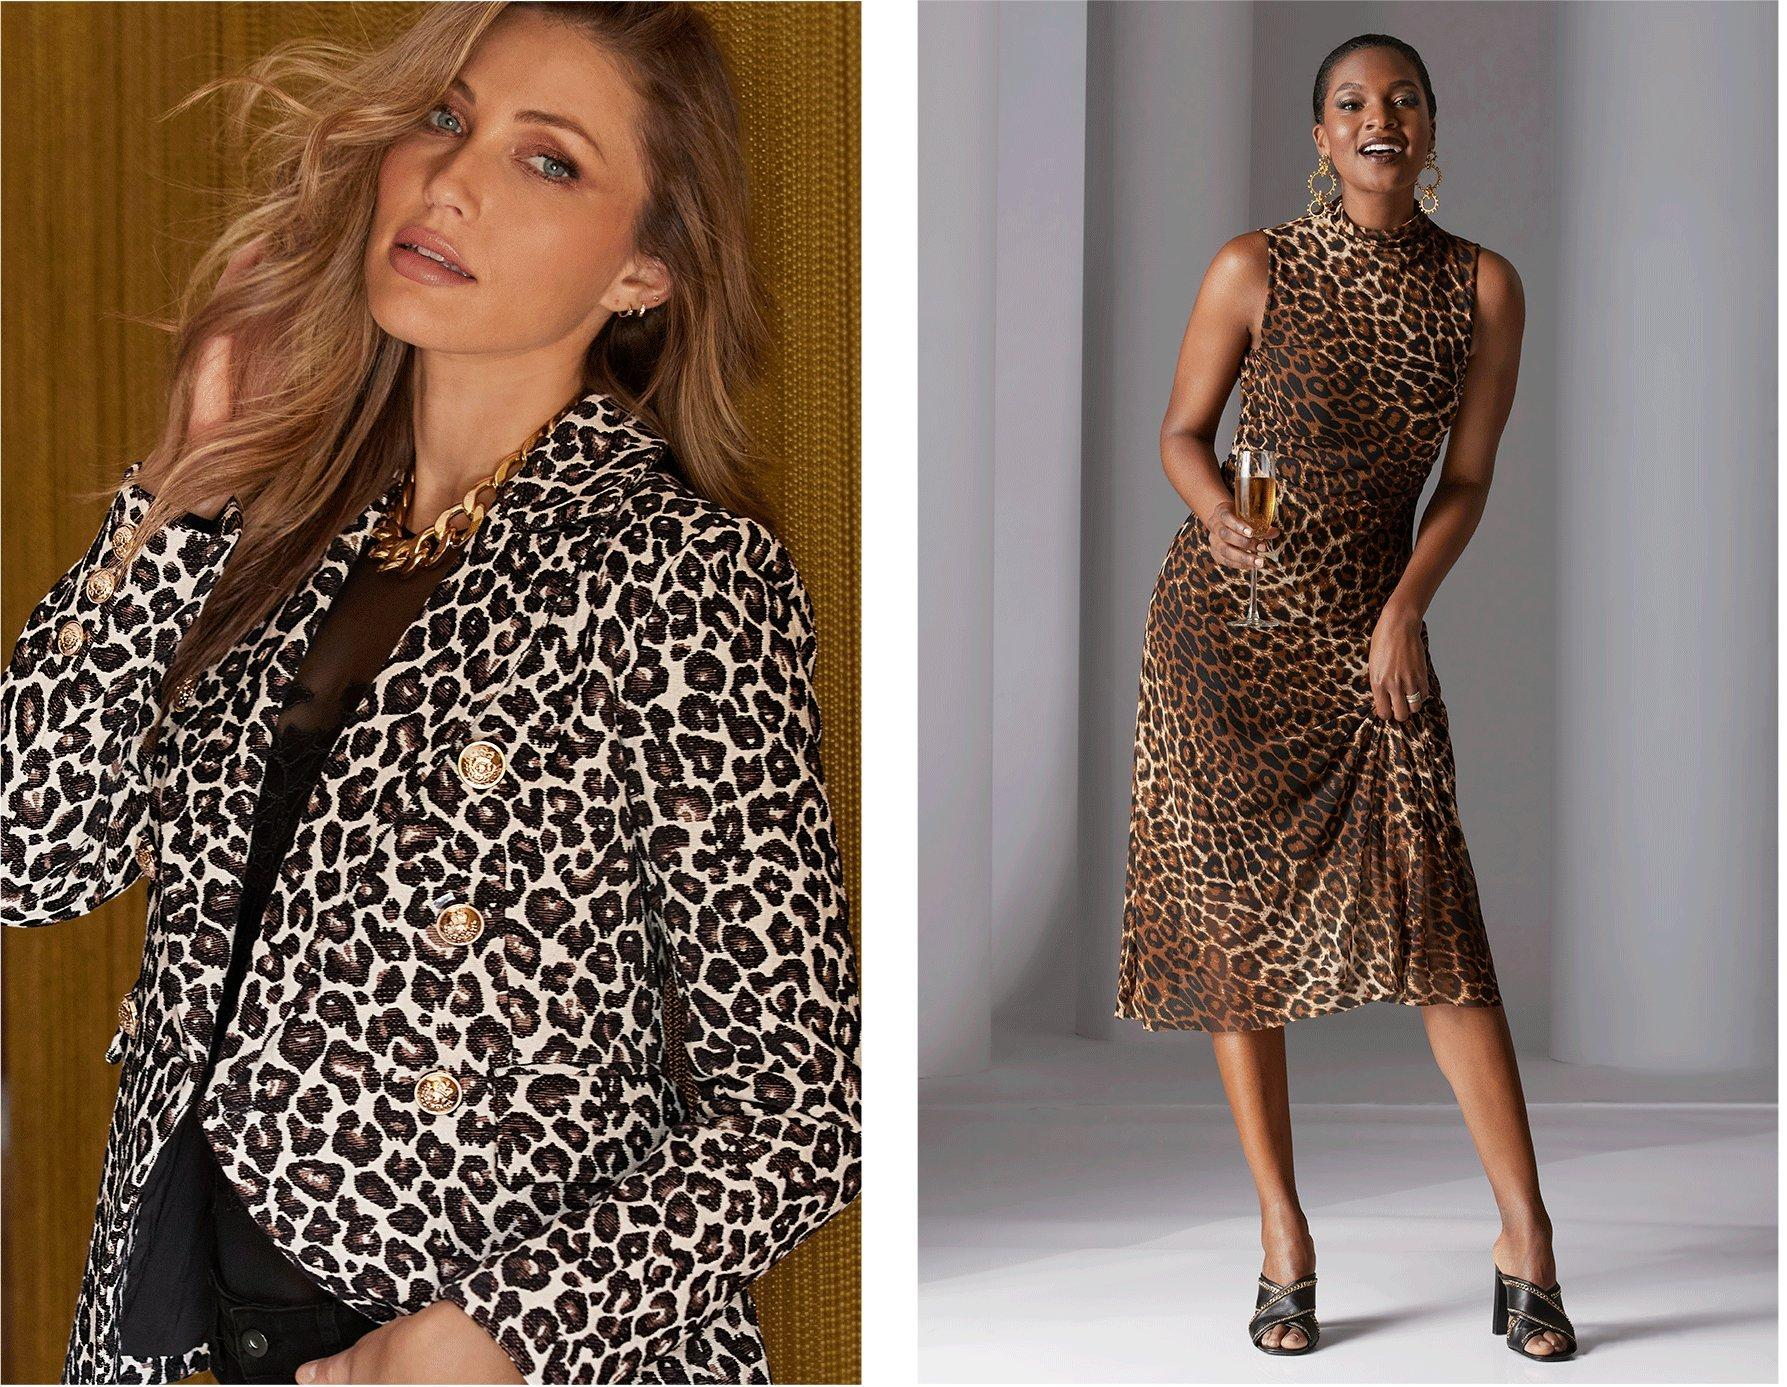 left model wearing a leopard print double-breasted blazer, black mesh and lace body suit, and a thick gold chain necklace. right model wearing a mock-neck sleeveless leopard print midi dress with black peep-toe mule heels.